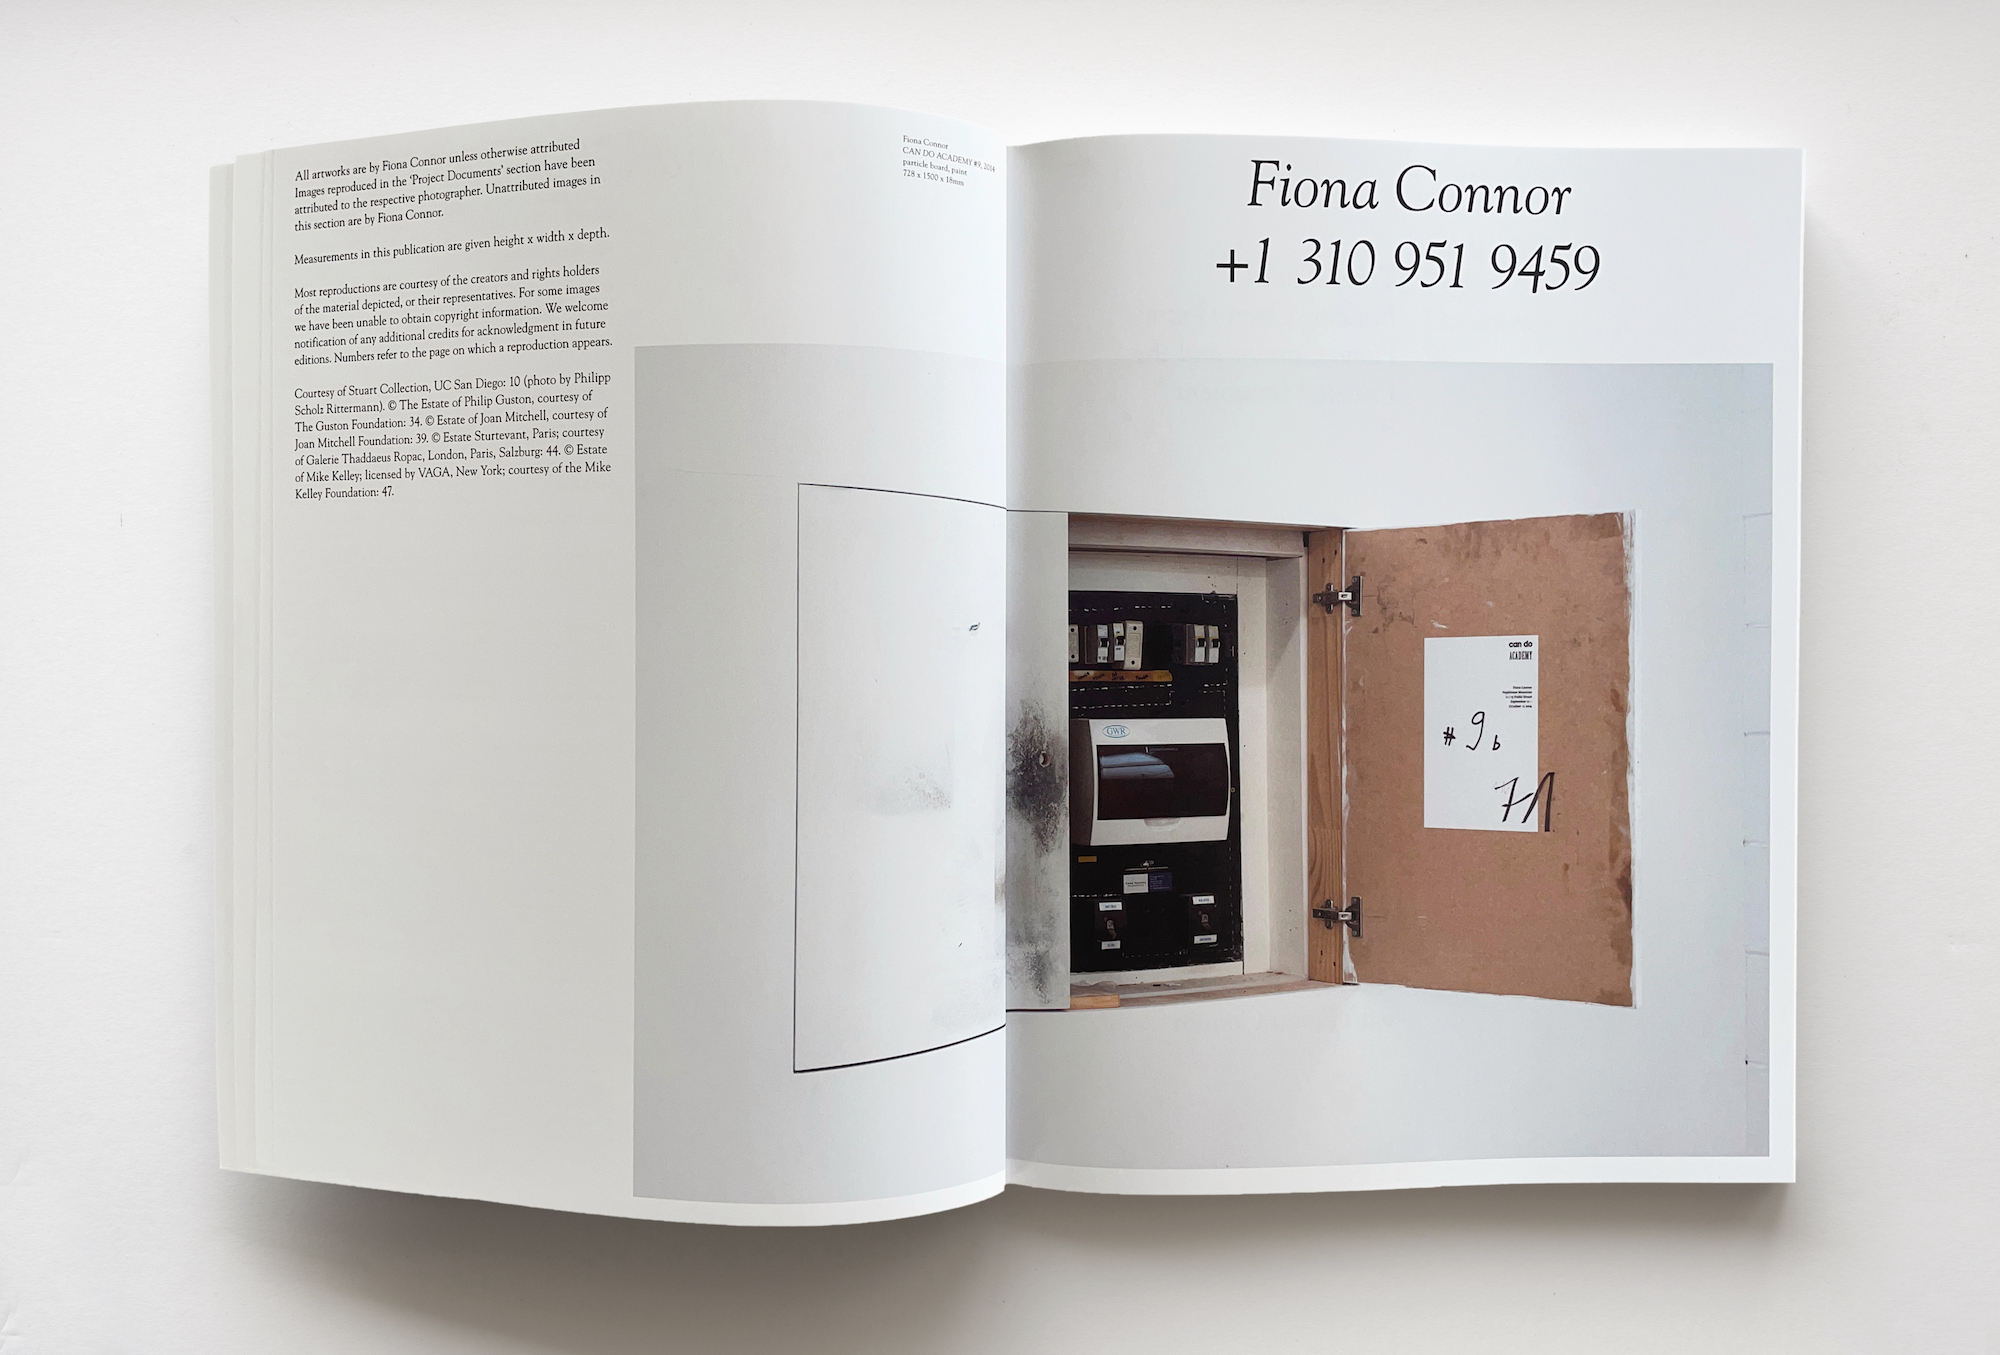 """Open spread of Fiona Connor's """"+3109519459"""" book open to cover page"""